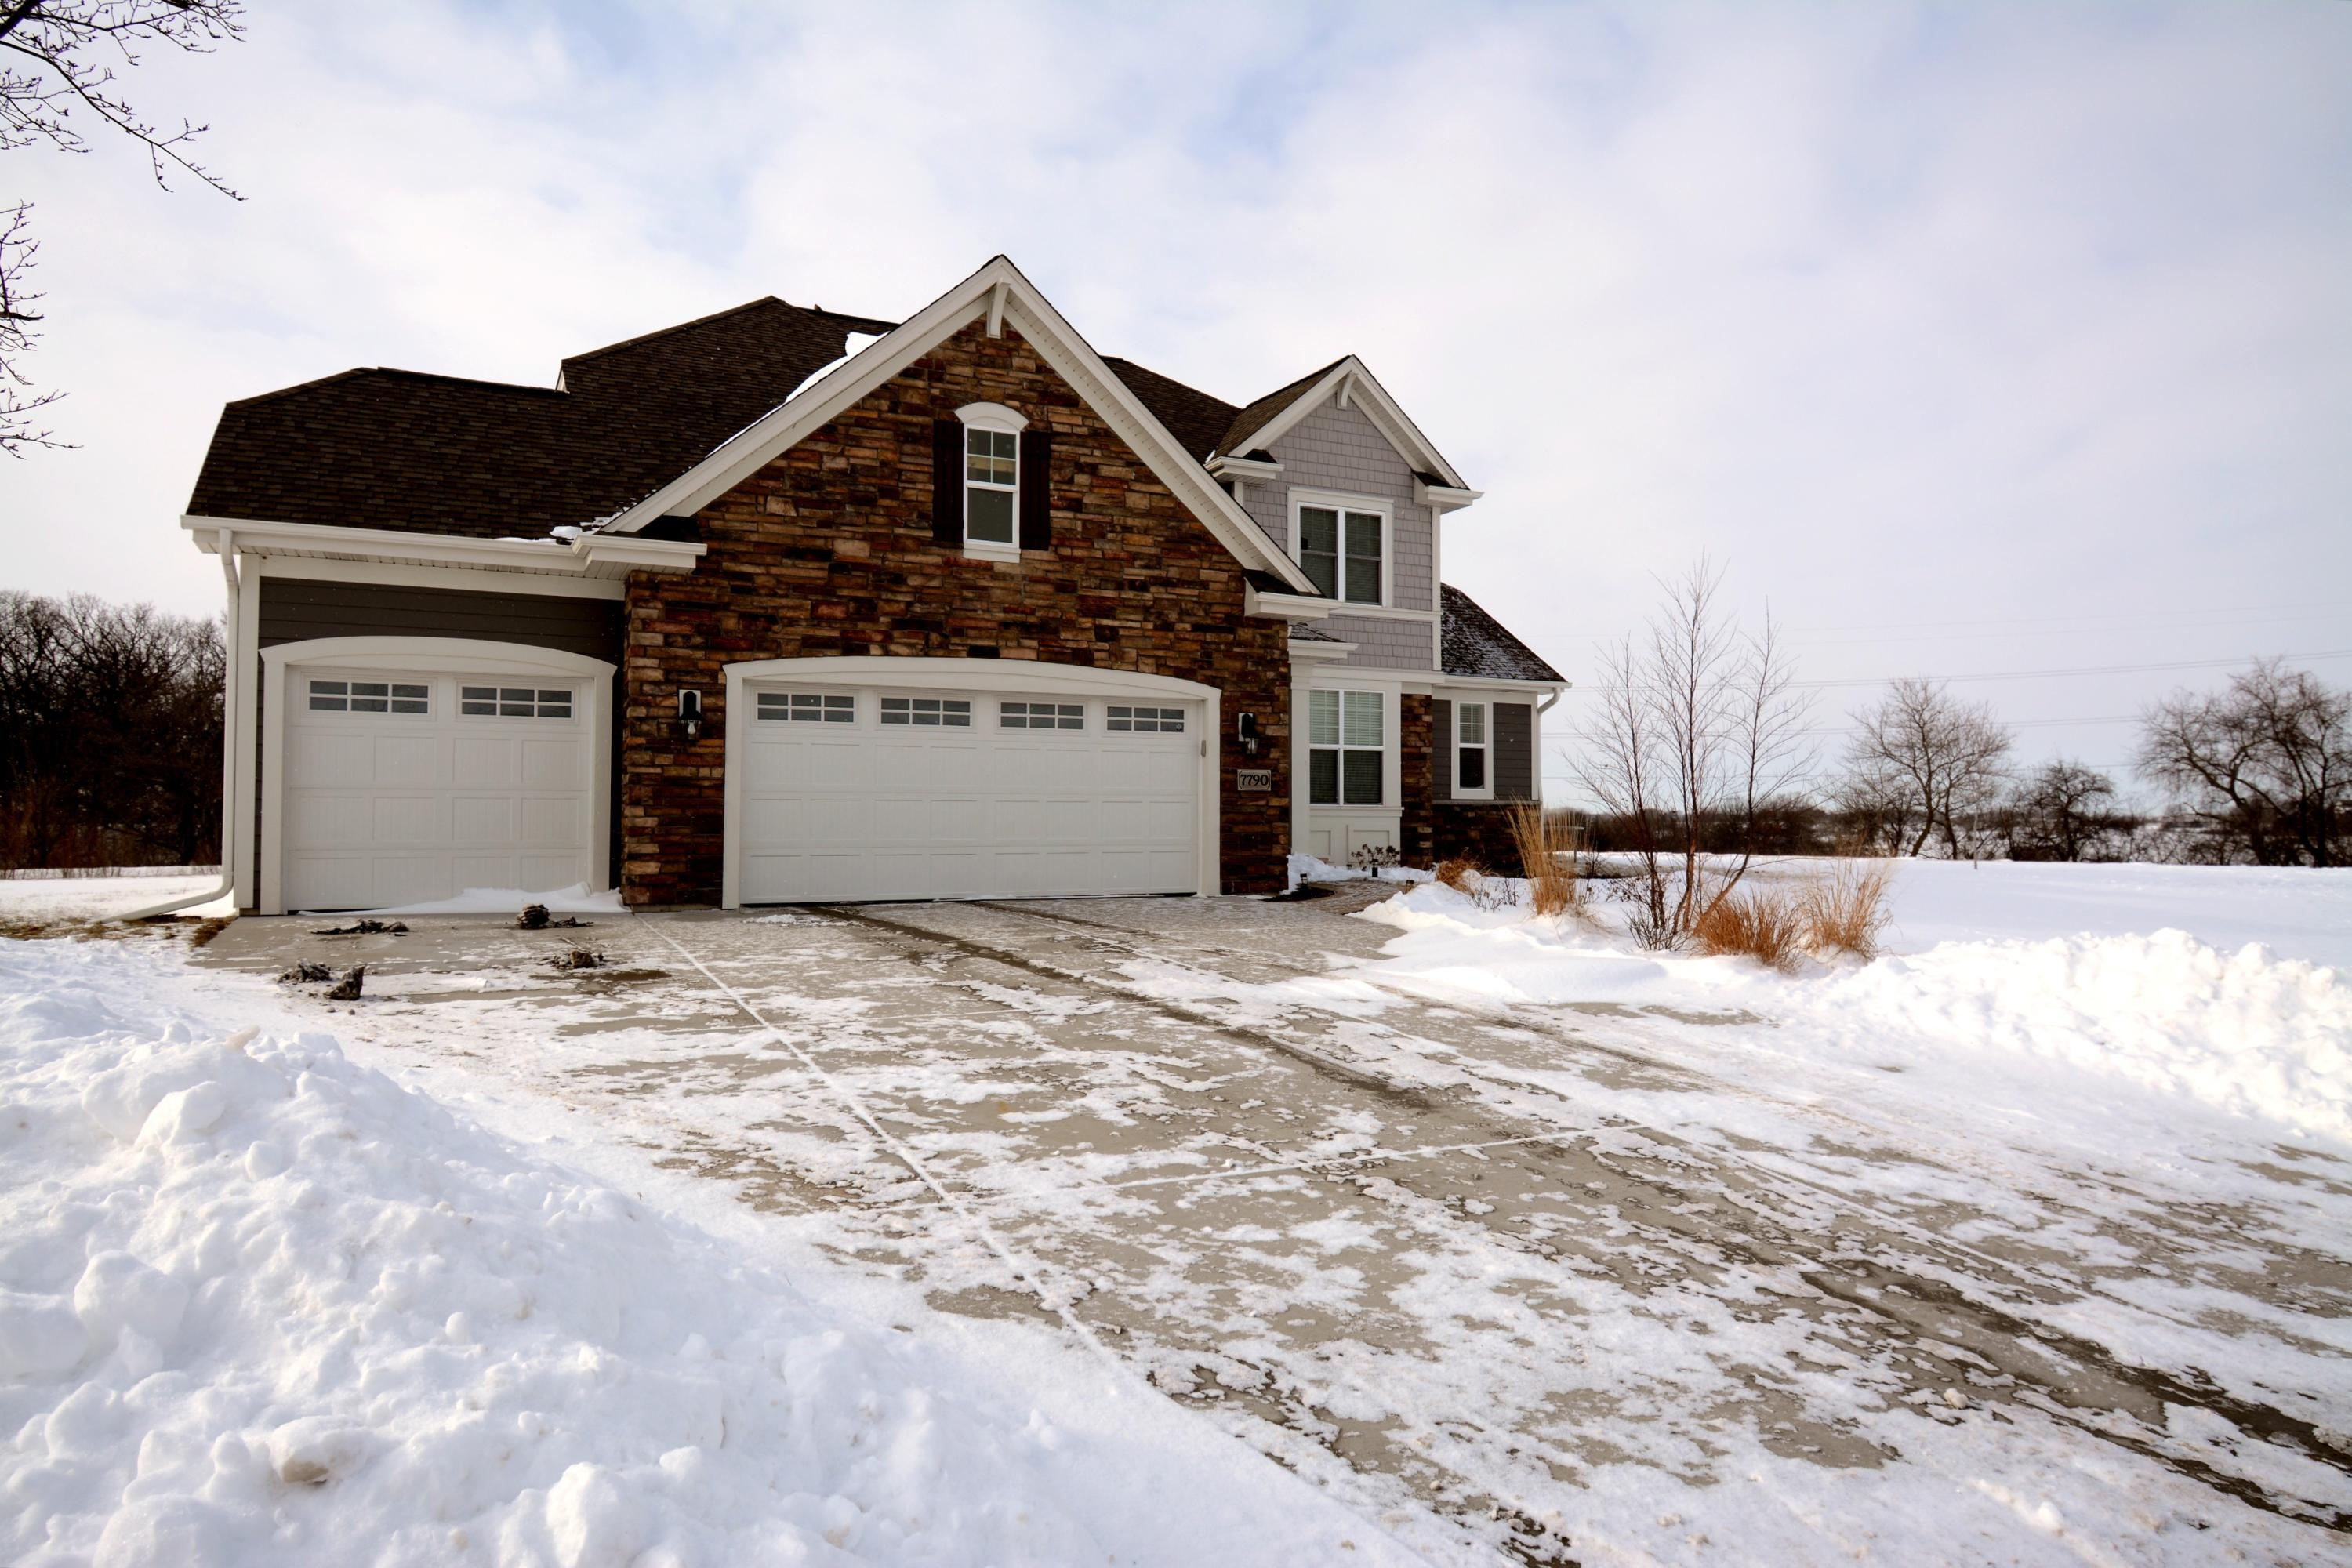 7790 130th Ave, Bristol, Wisconsin 53104, 4 Bedrooms Bedrooms, 10 Rooms Rooms,3 BathroomsBathrooms,Single-Family,For Sale,130th Ave,1619239